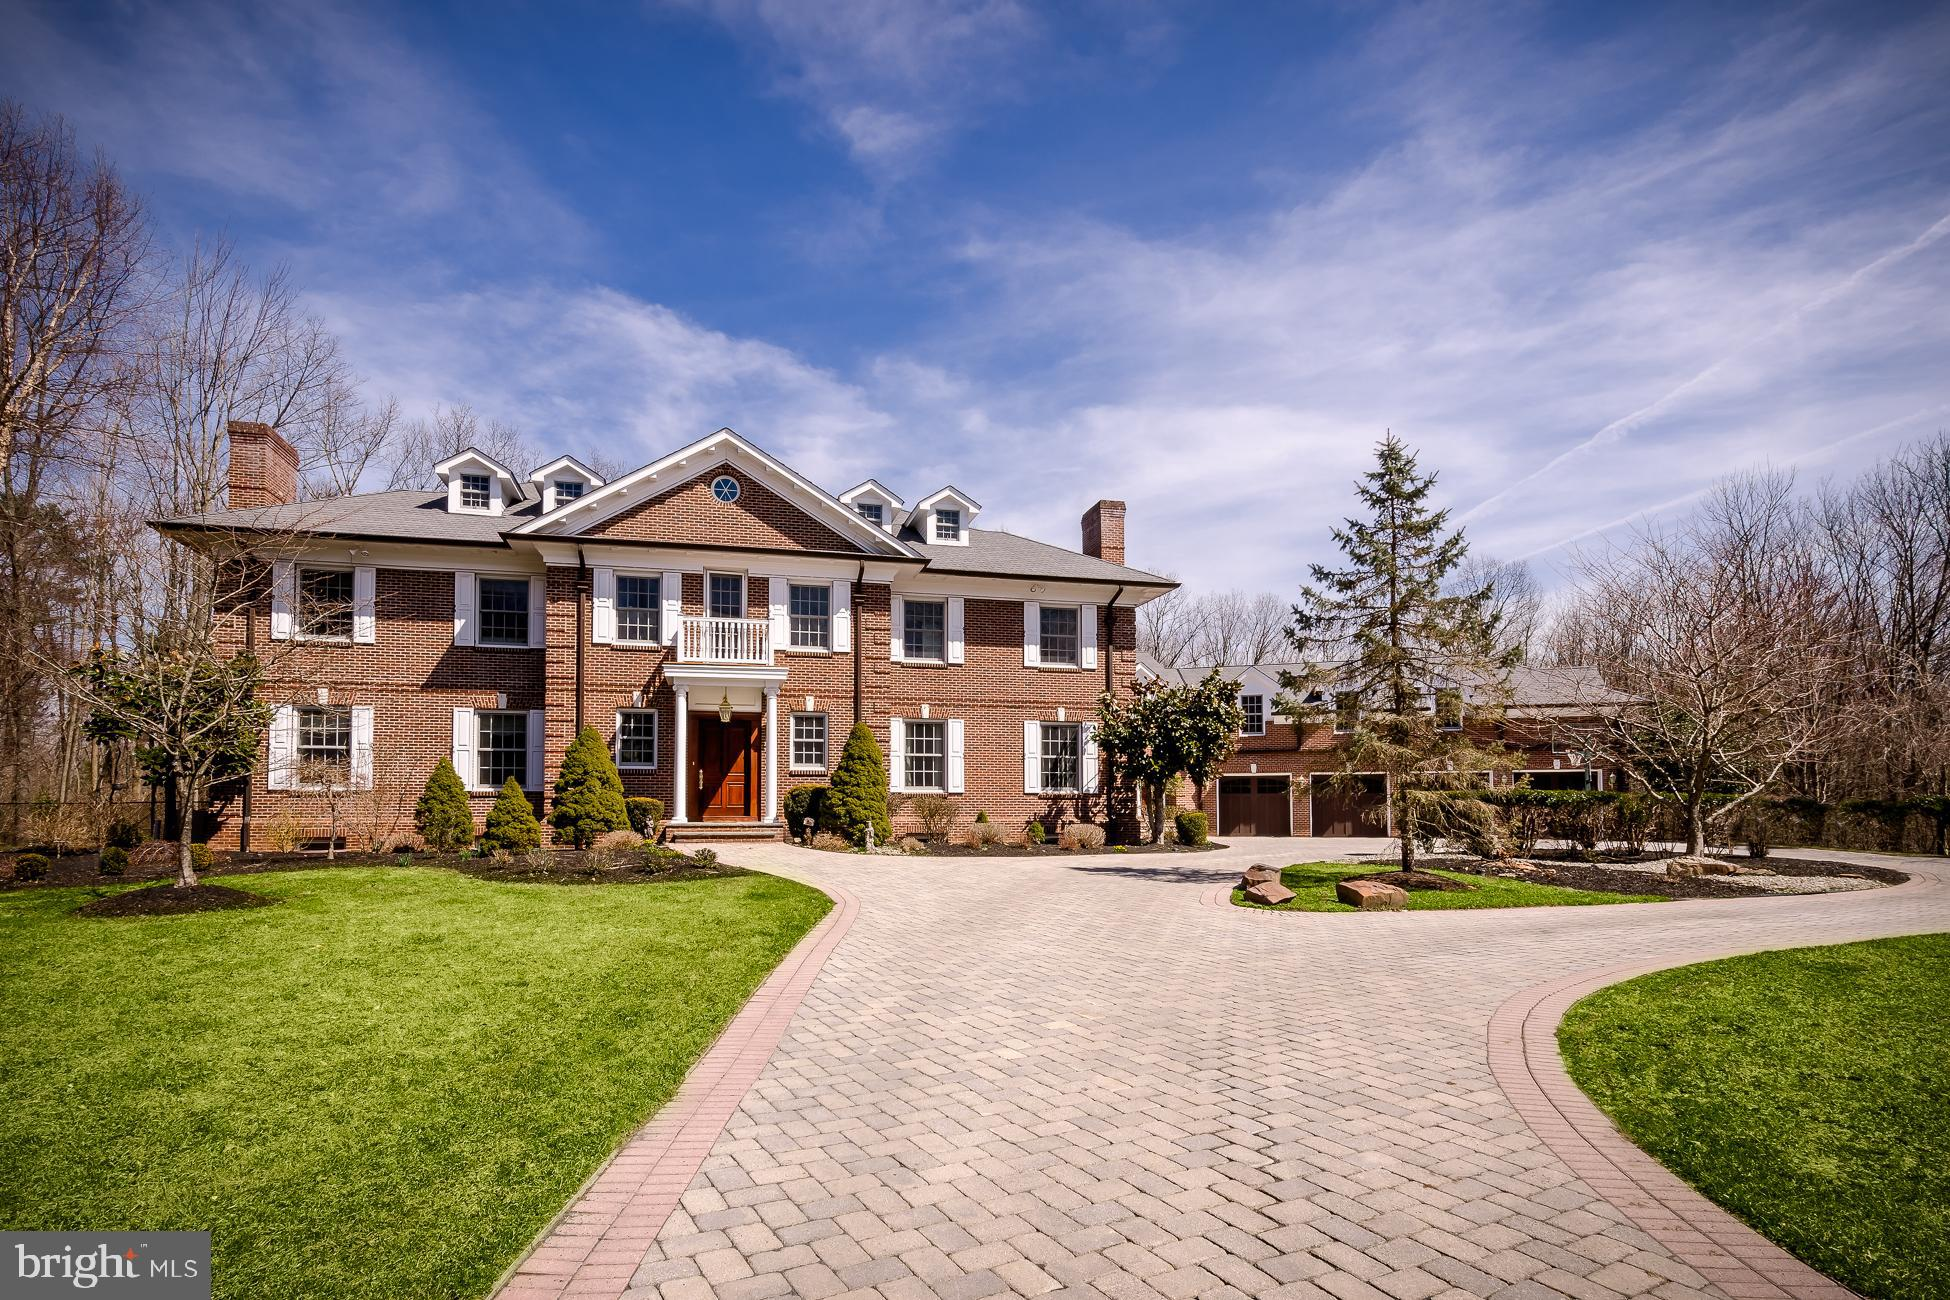 8 PLAYERS LANE, PRINCETON, NJ 08540